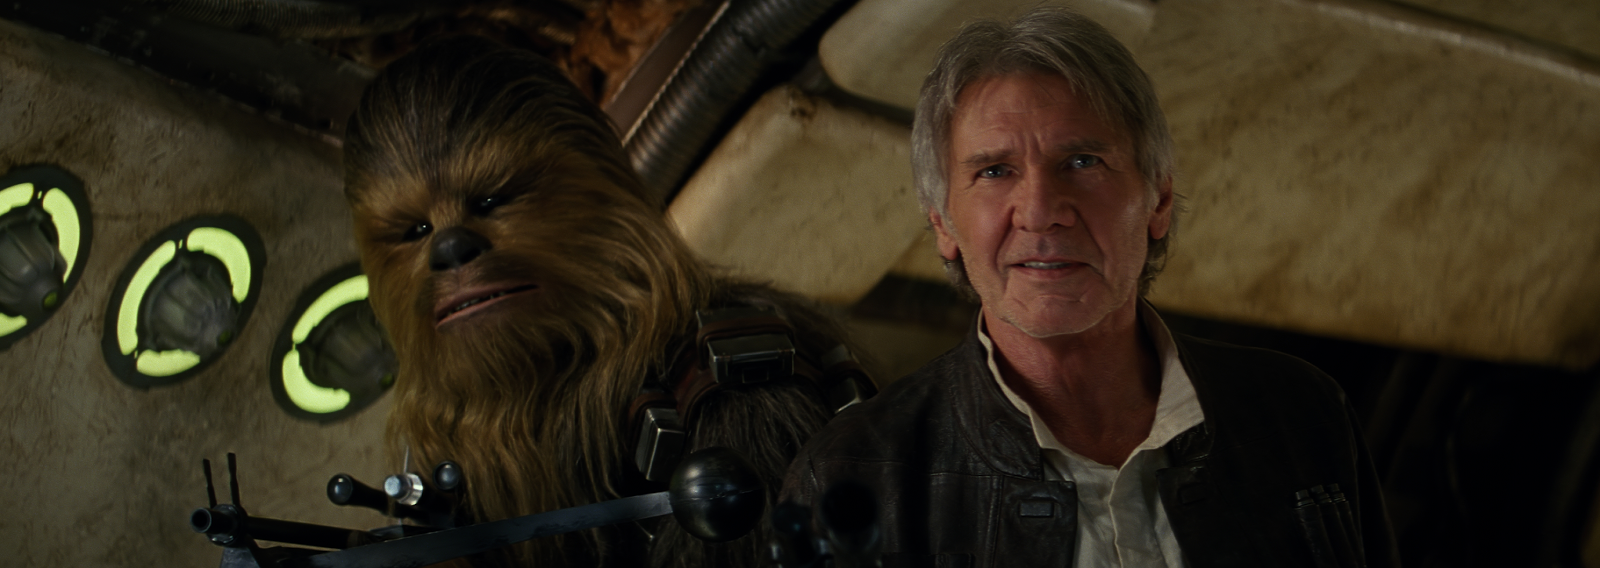 Star Wars: The Force Awakens - First Trailer